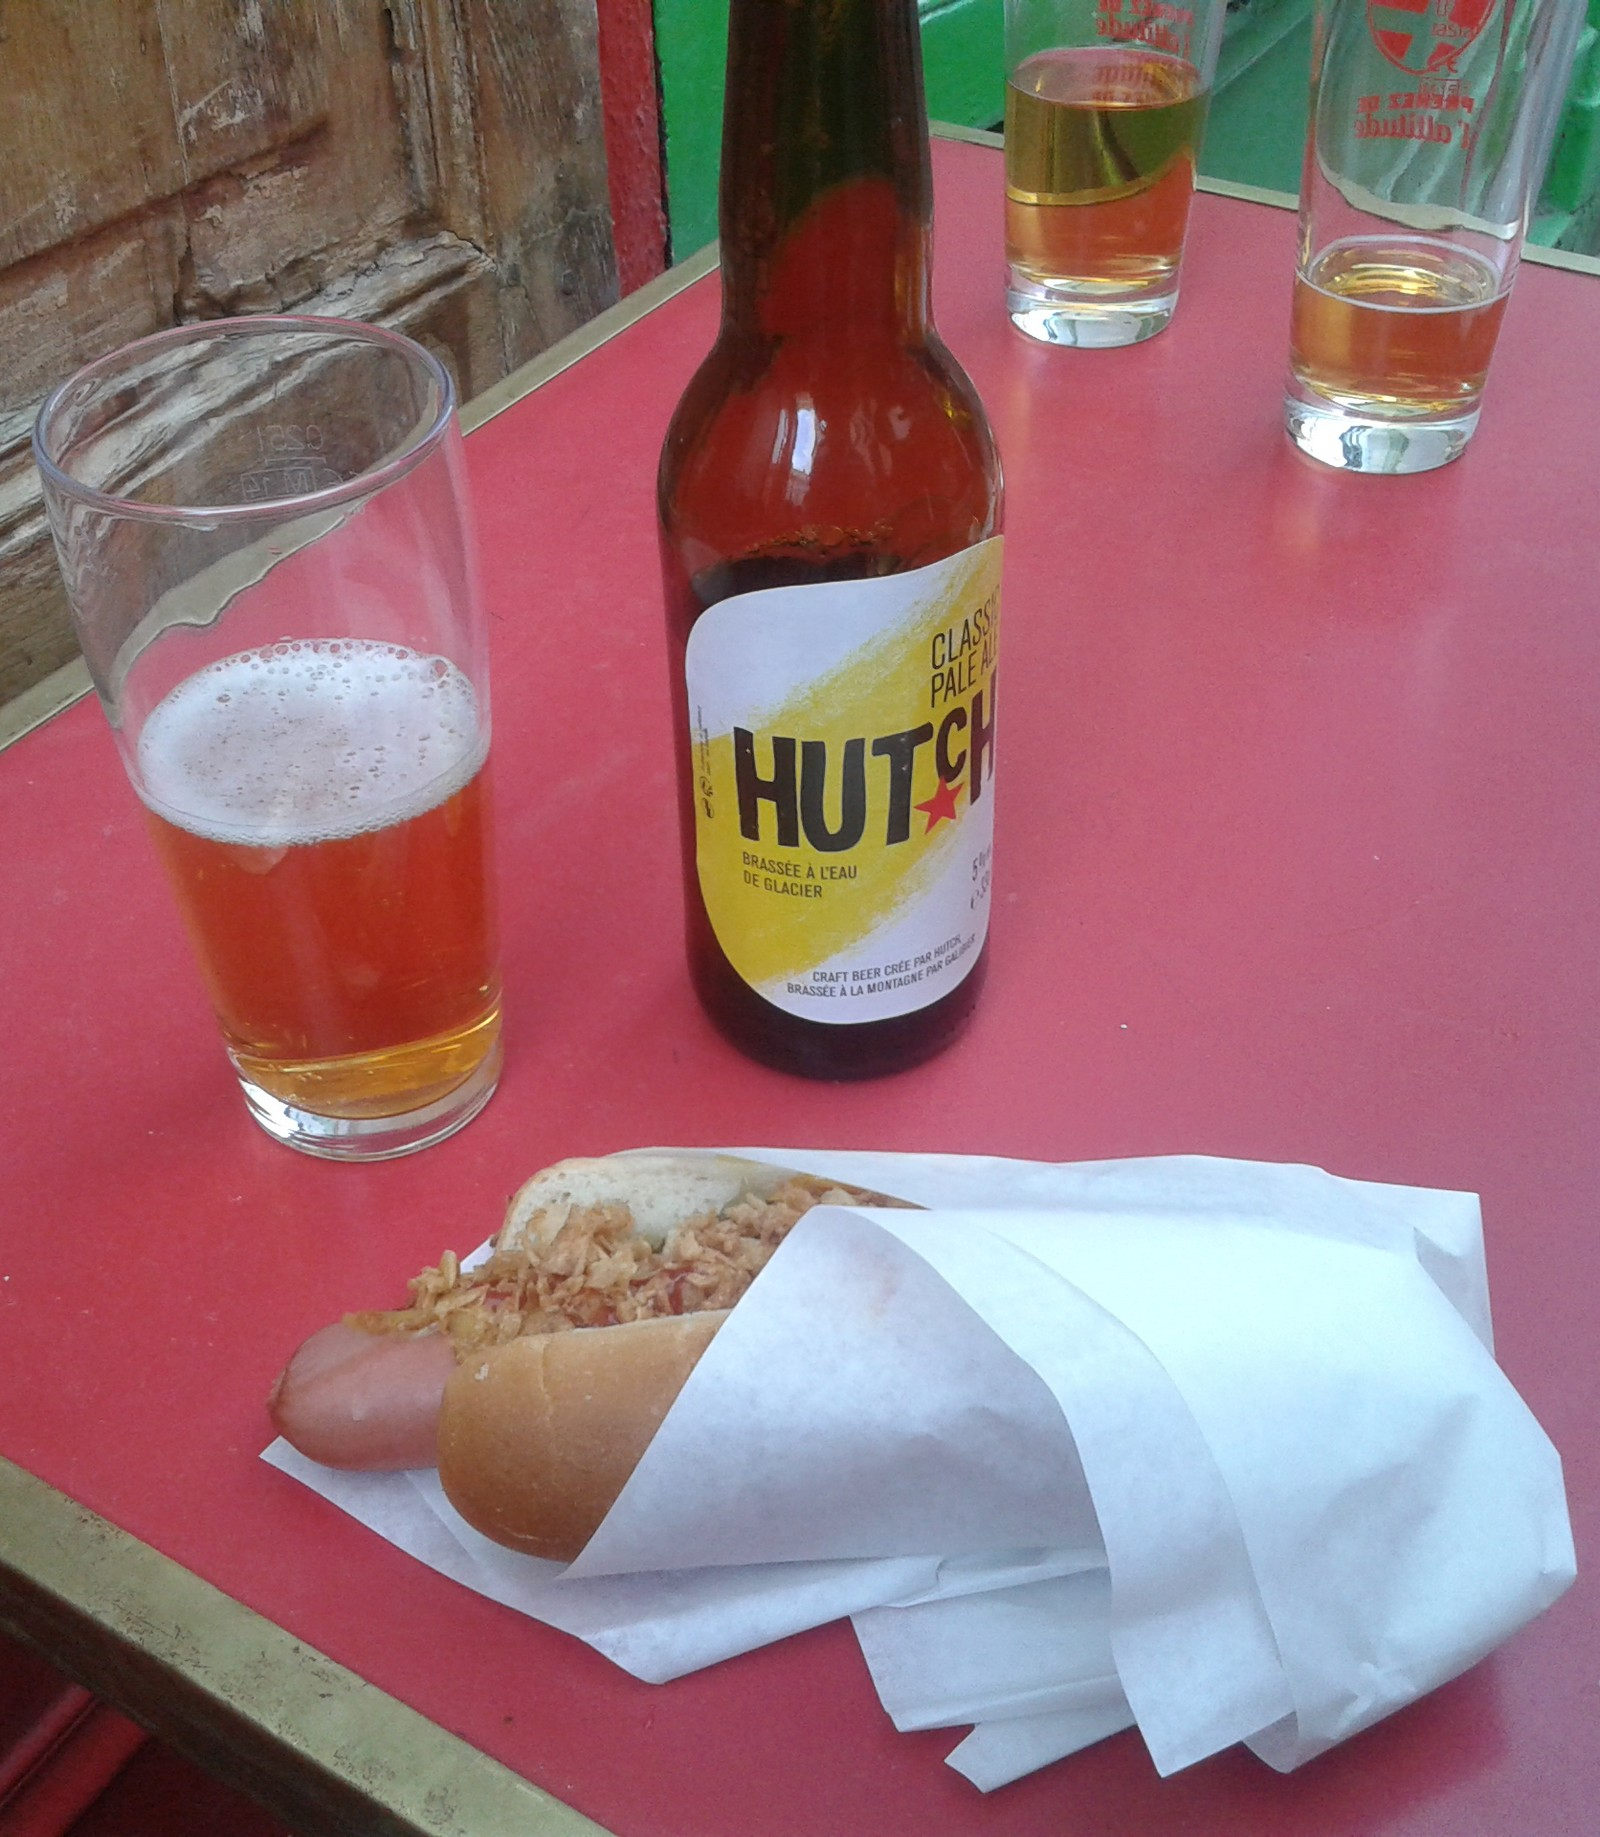 Hutch : bière et hot-dog